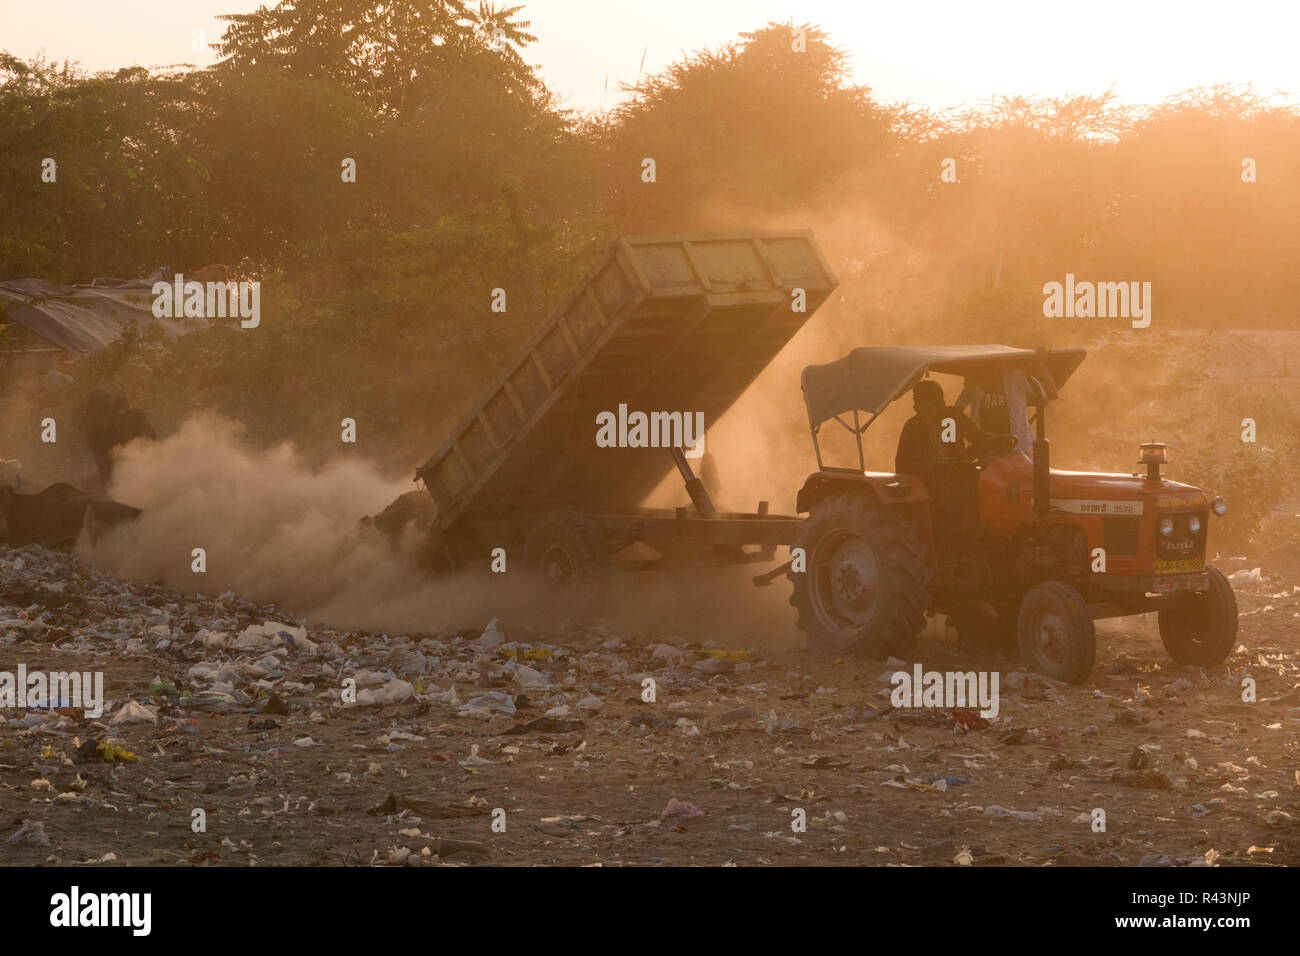 Tractor dumping trash in dumping ground in Pushkar, Rajasthan, India - Stock Image